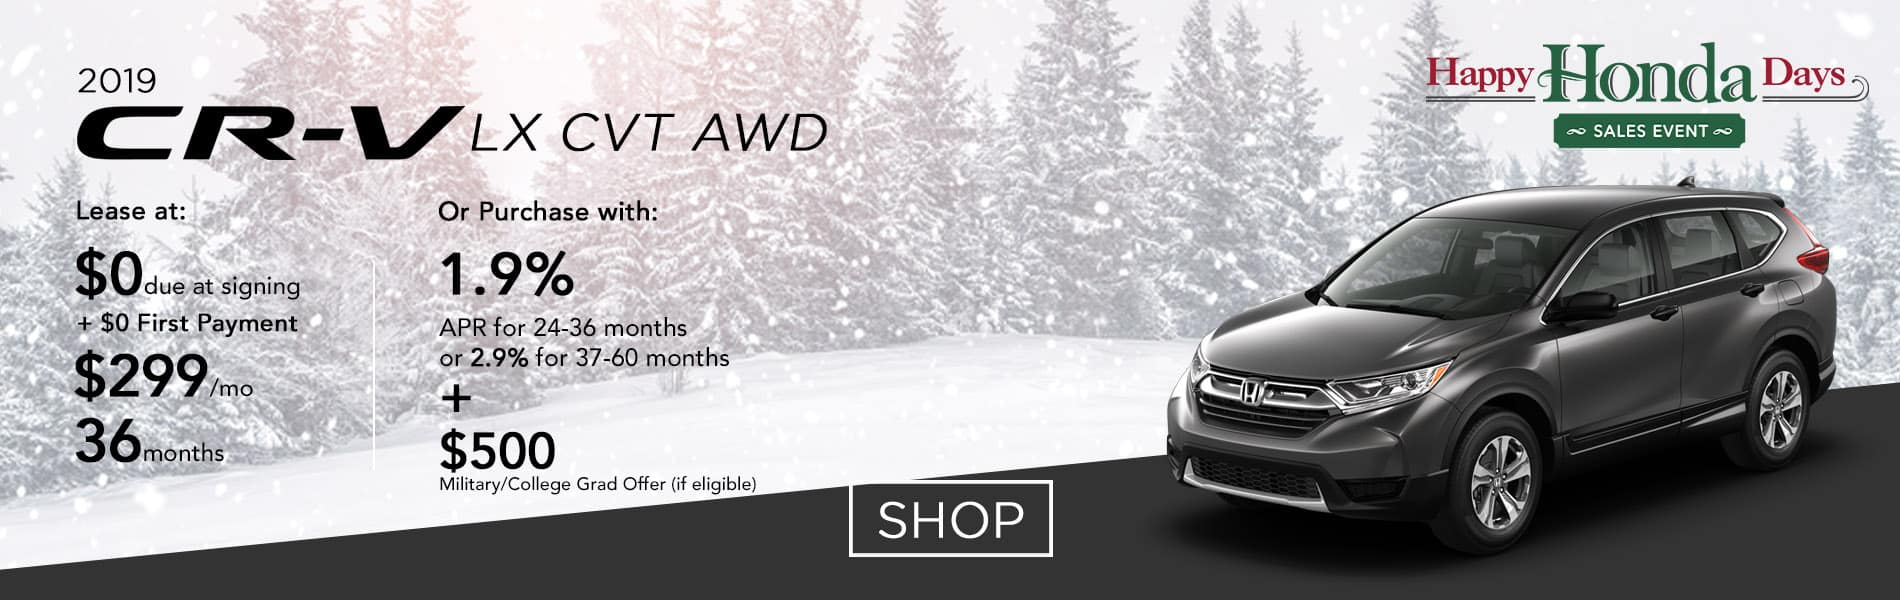 Lease a 2019 CR-V LX CVT AWD for $299 per month or purchase with 1.9% APR up to 36 months